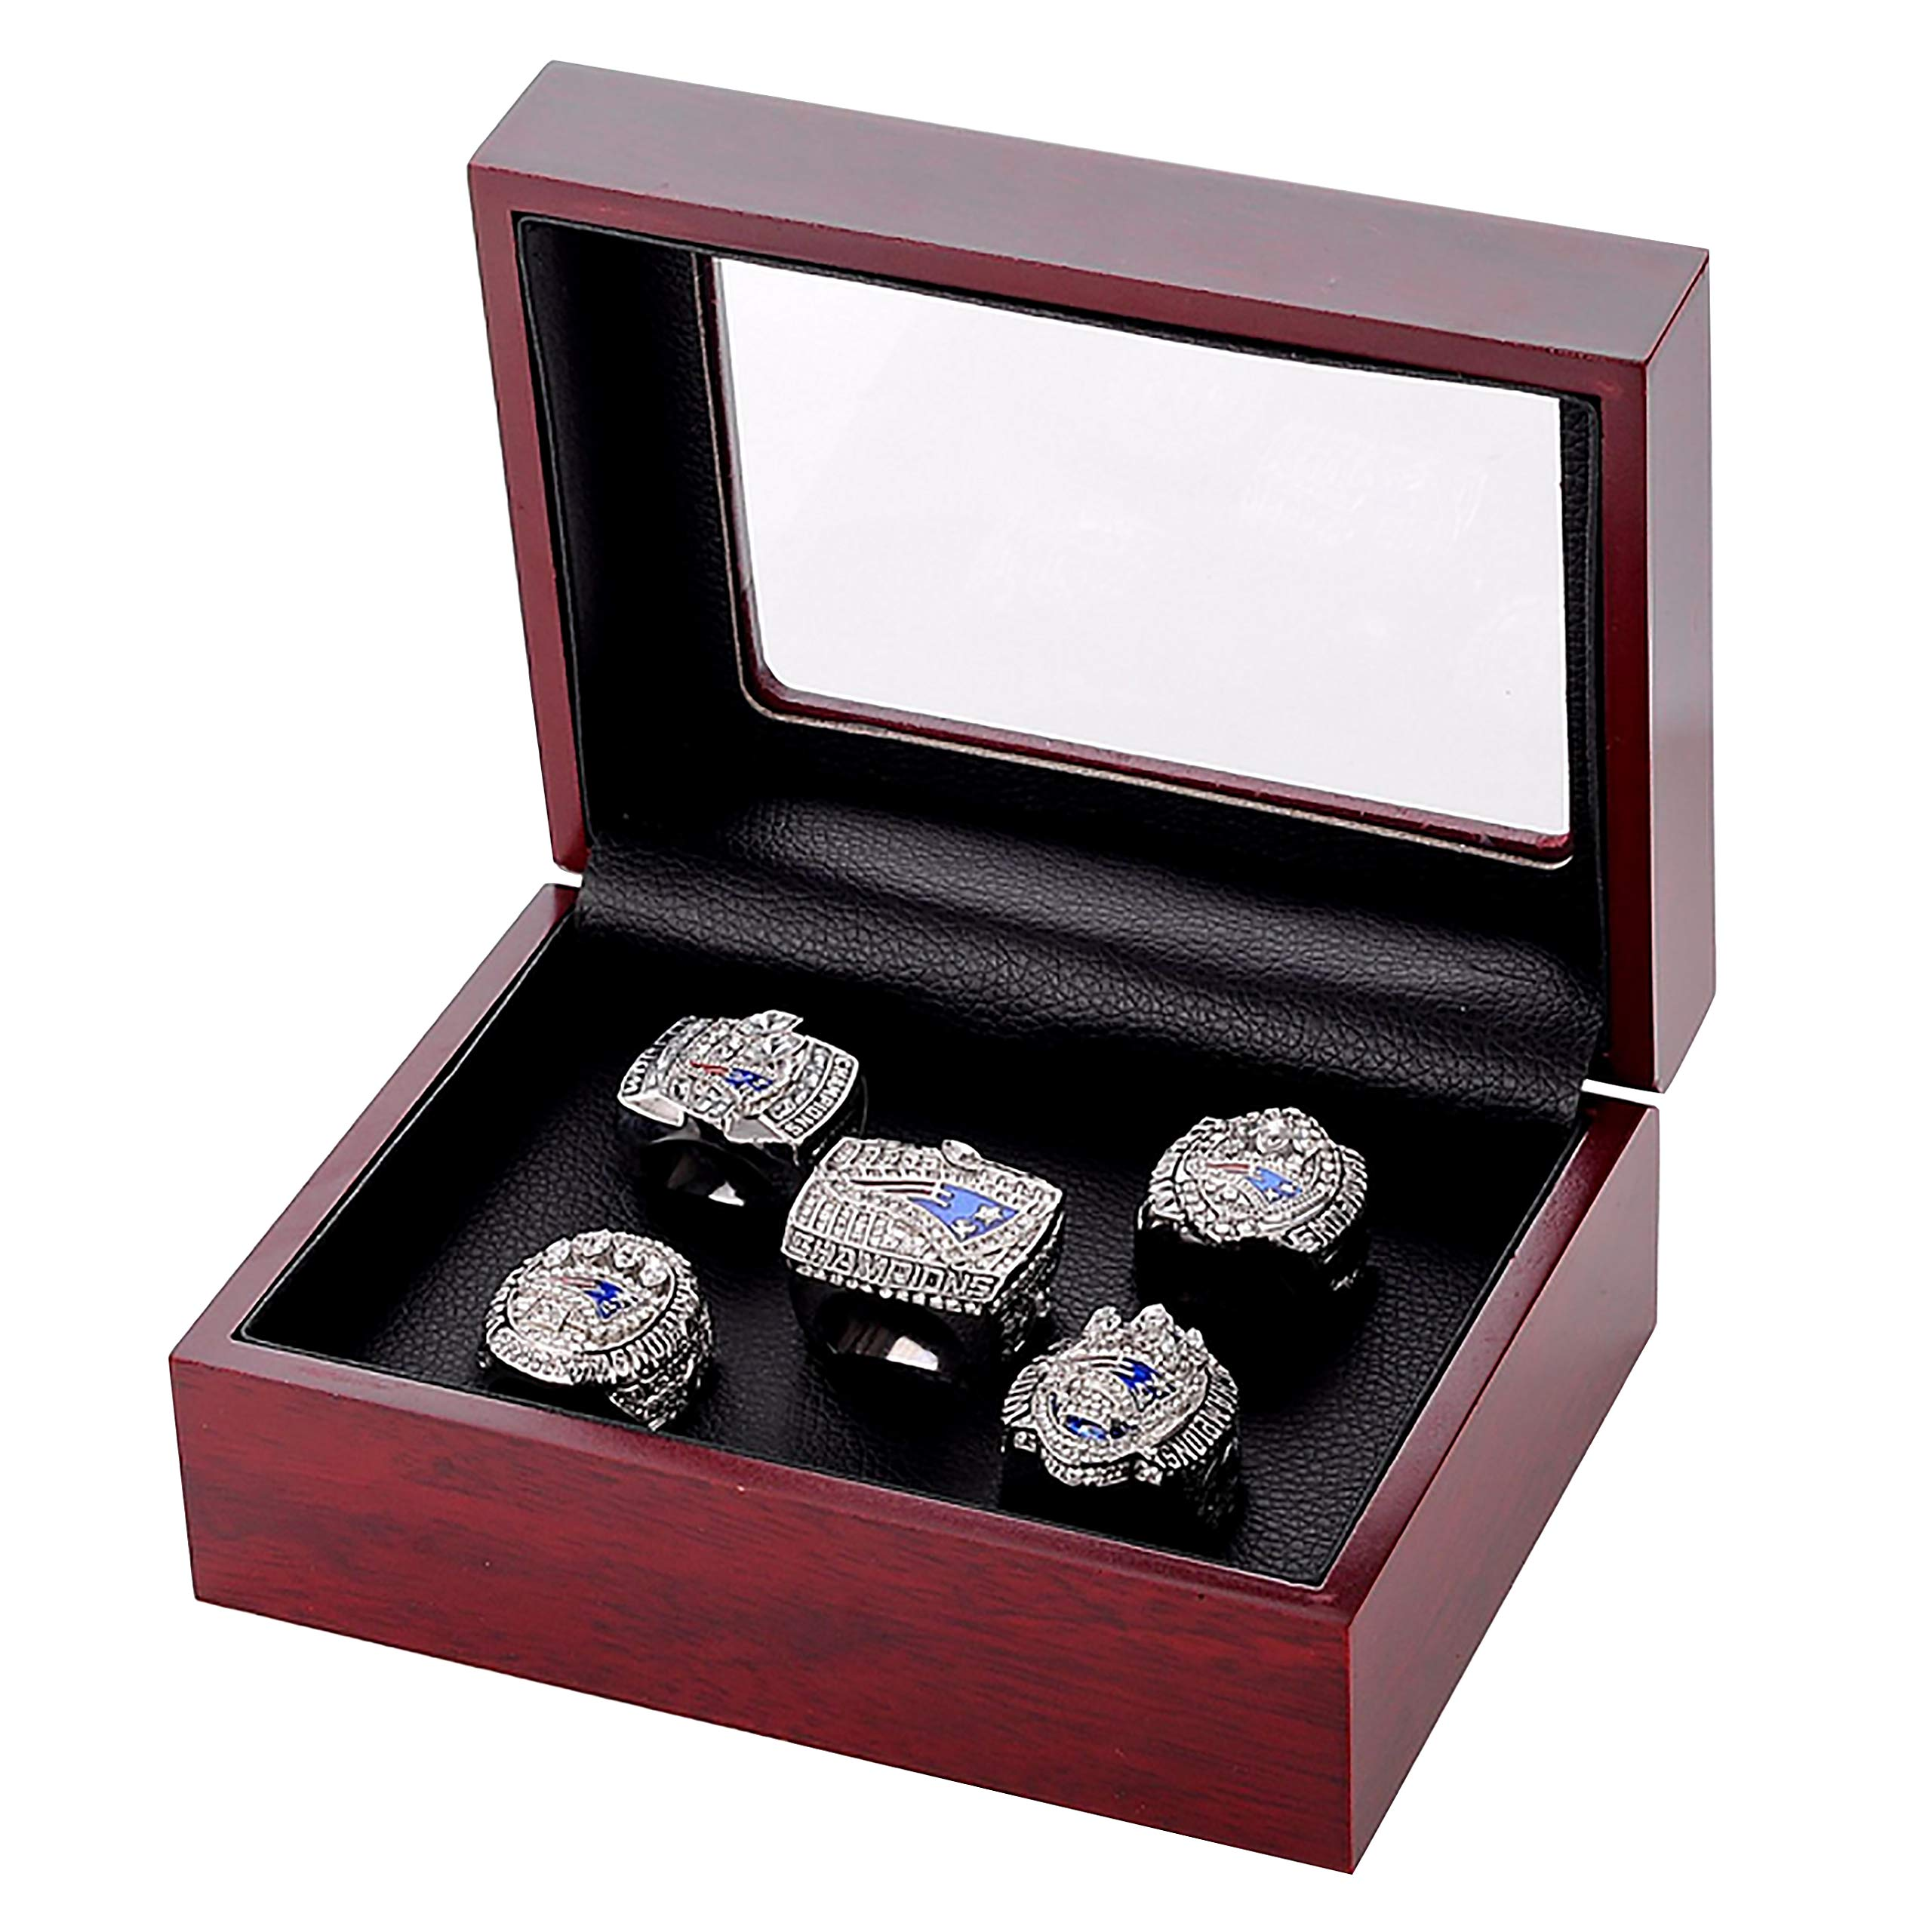 GF-sports store Set of 5 New England Patriots Championship Replica Ring Display Box Set- Fashion Gorgeous Collectible Jewelry